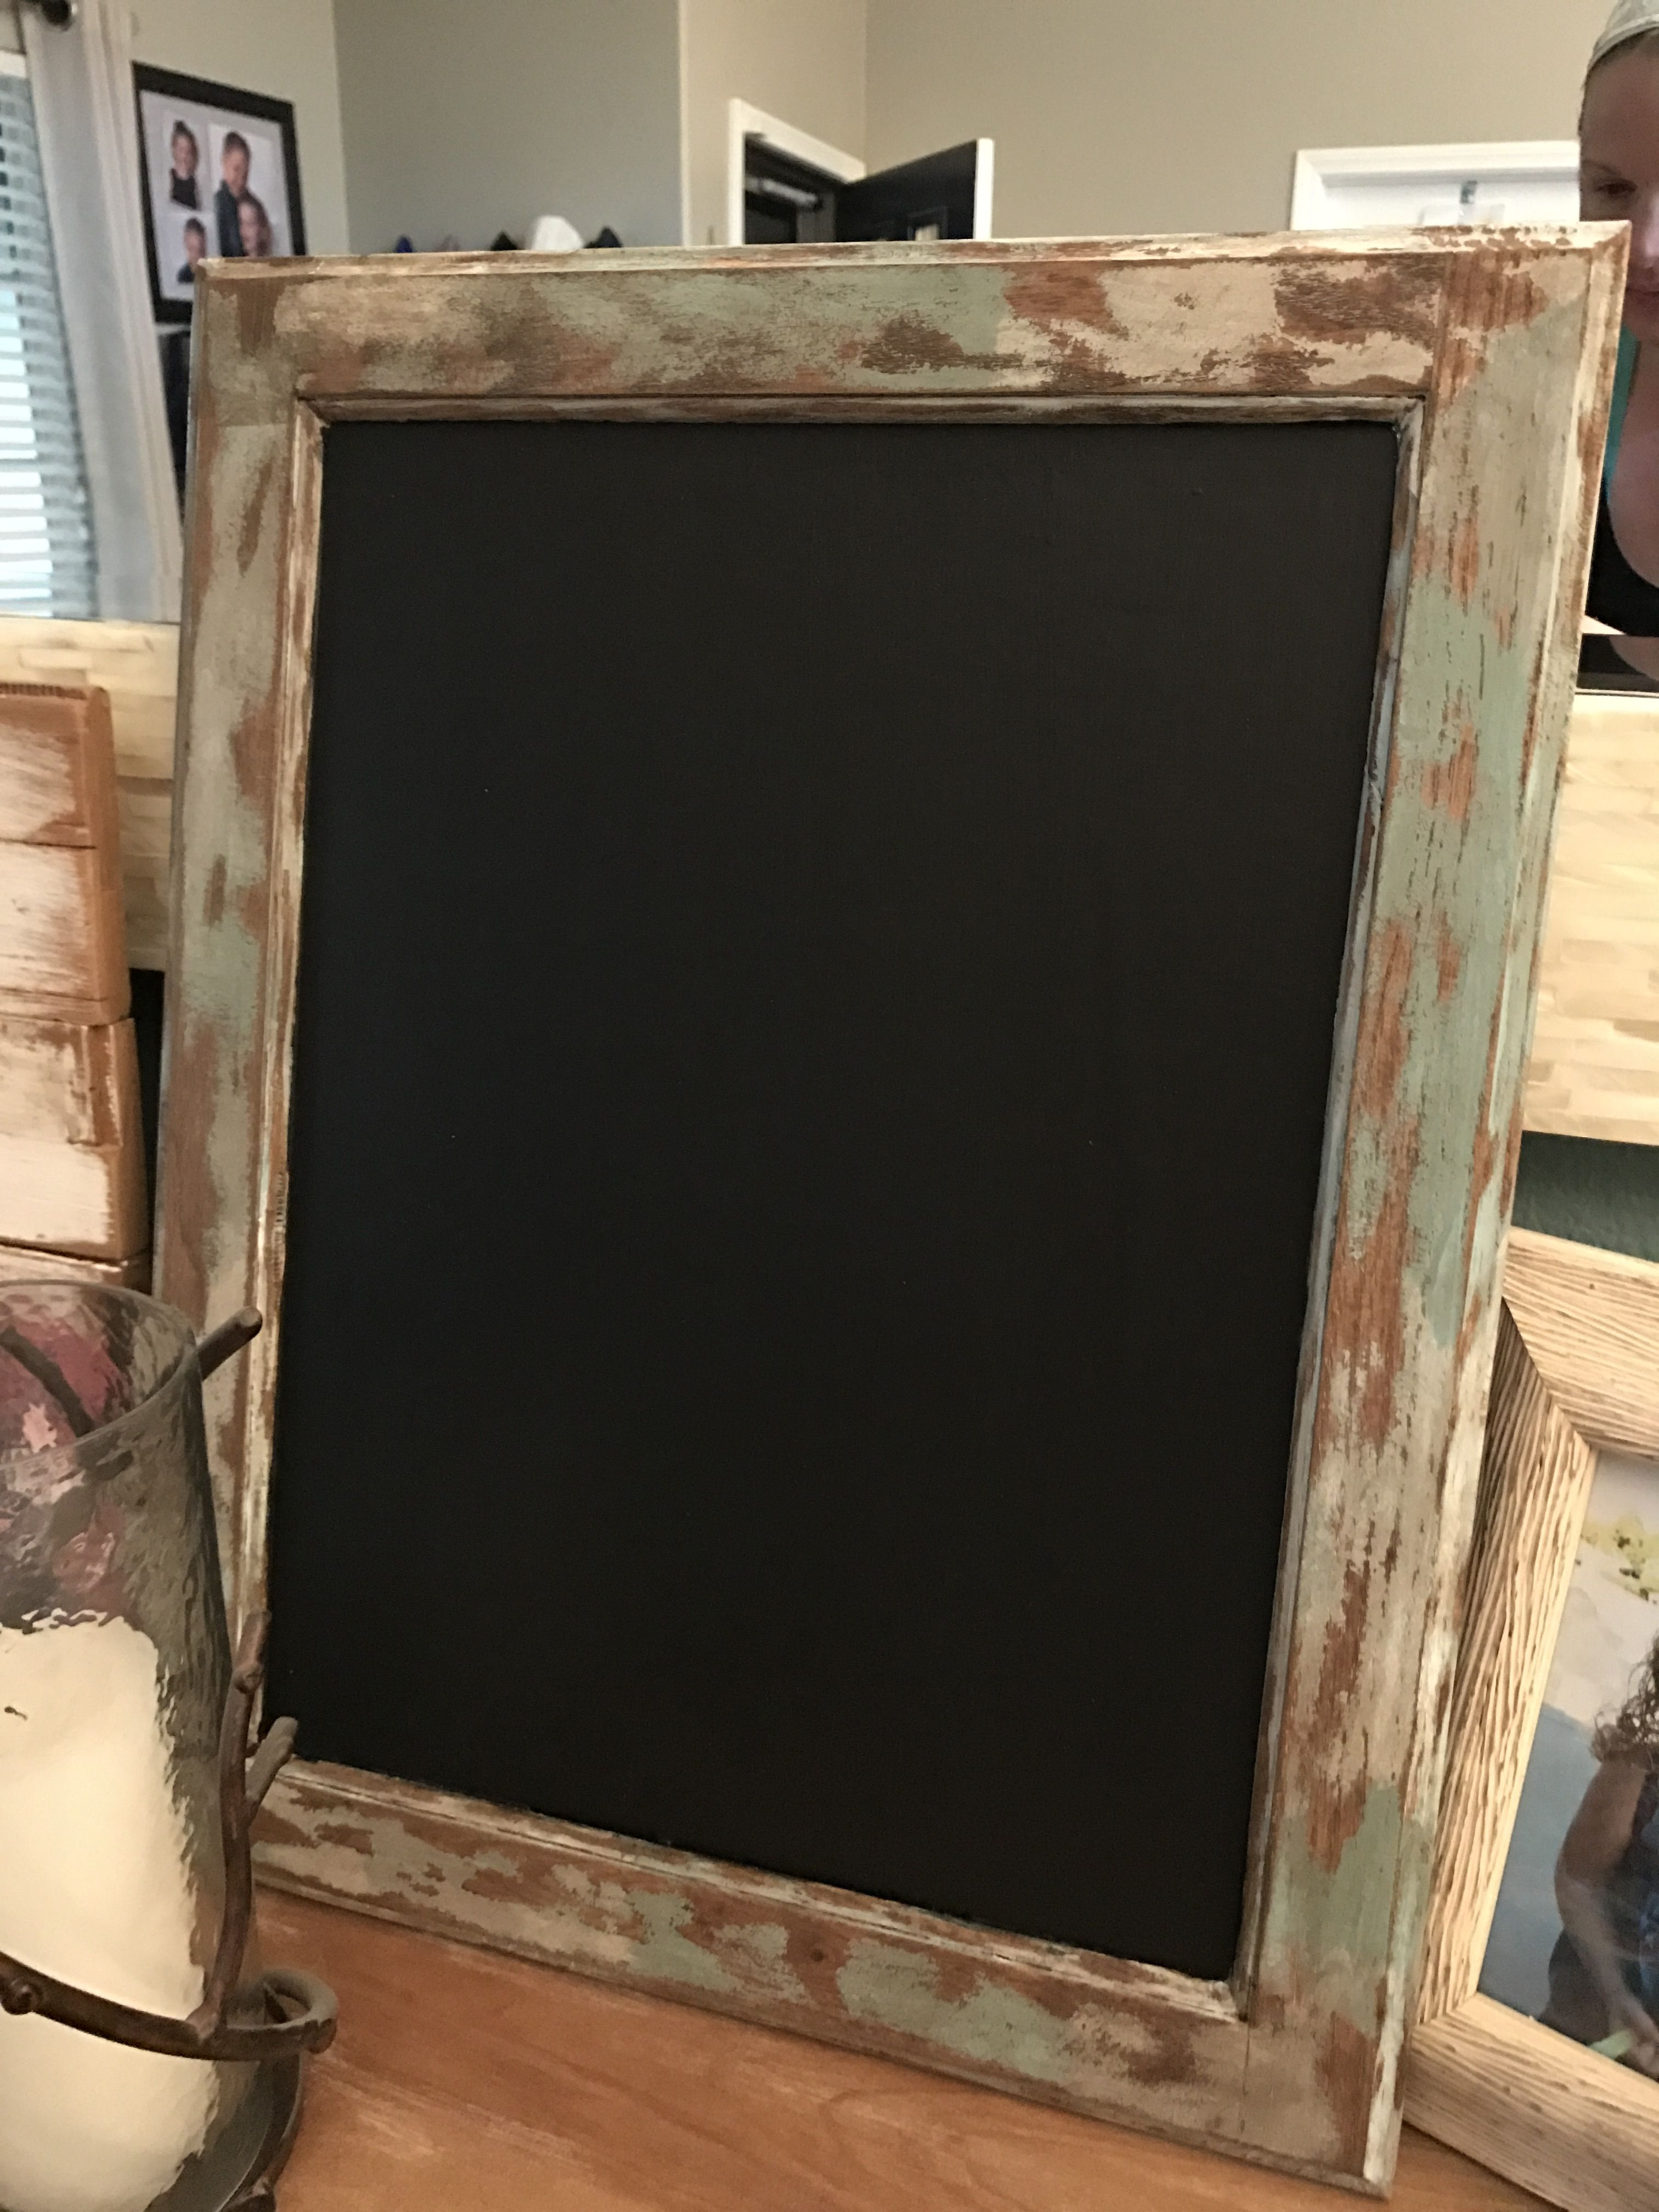 Cabinet door face turned chalkboard with rustic old barn wood frame ...